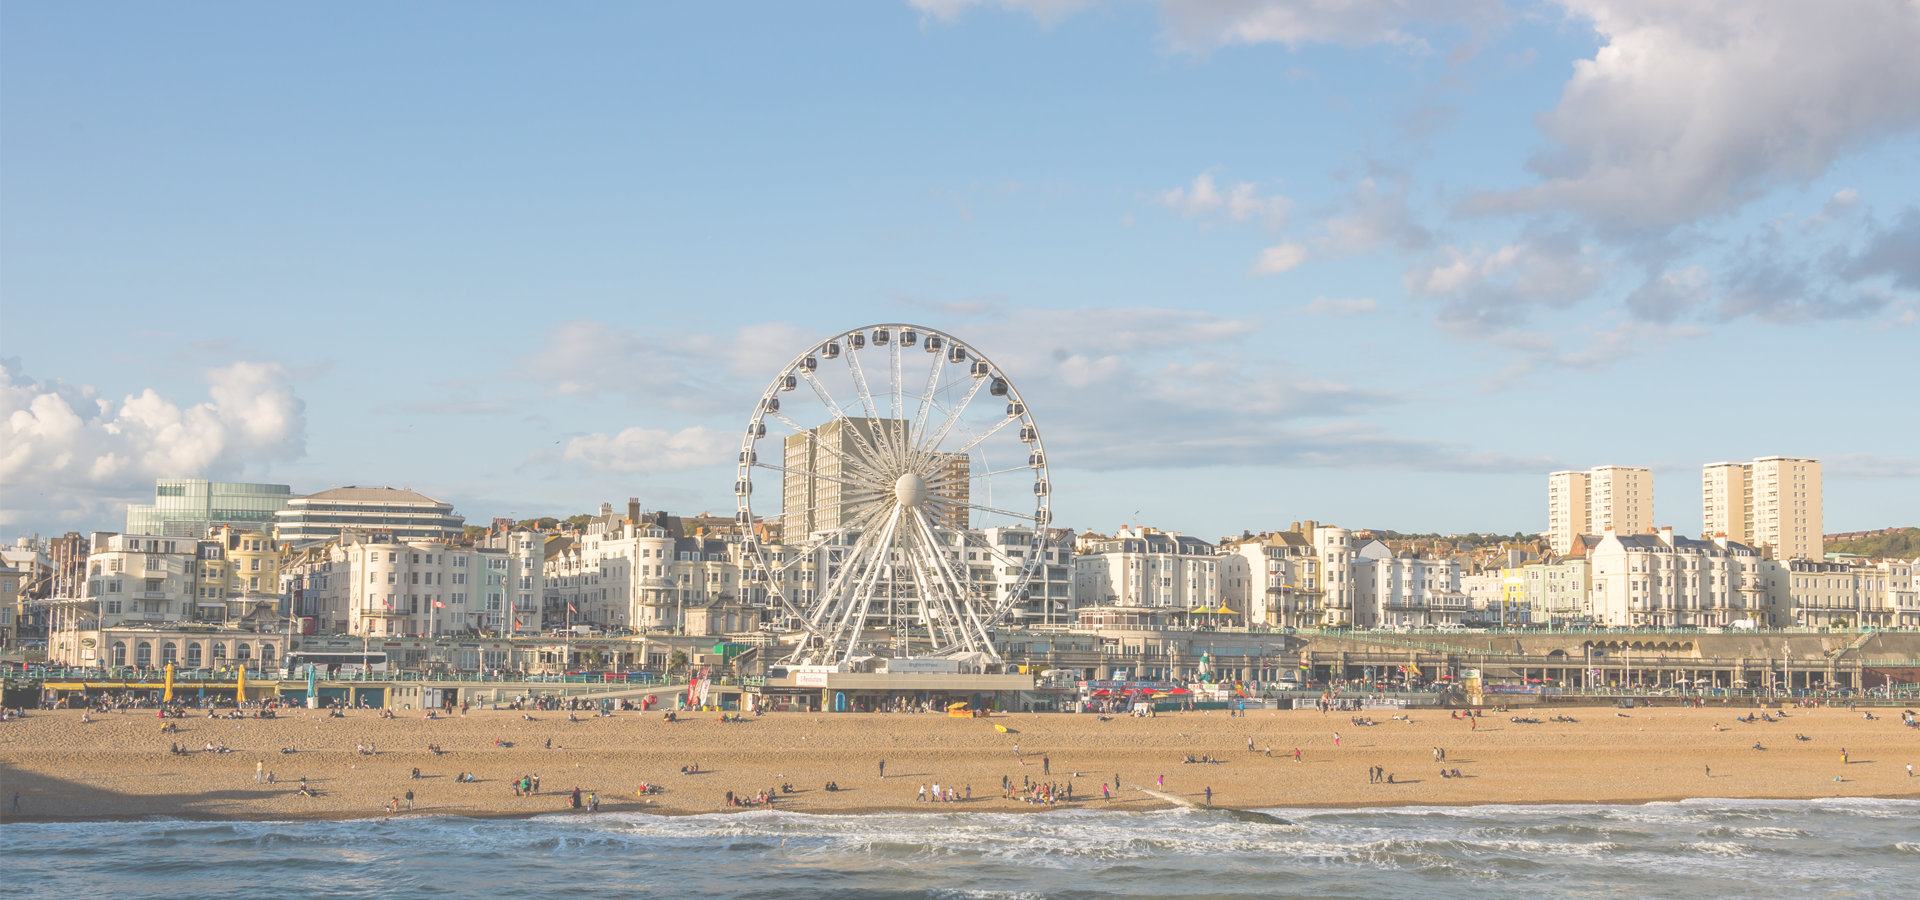 Peer-to-peer advisory in Brighton and Hove, Sussex, England, Great Britain